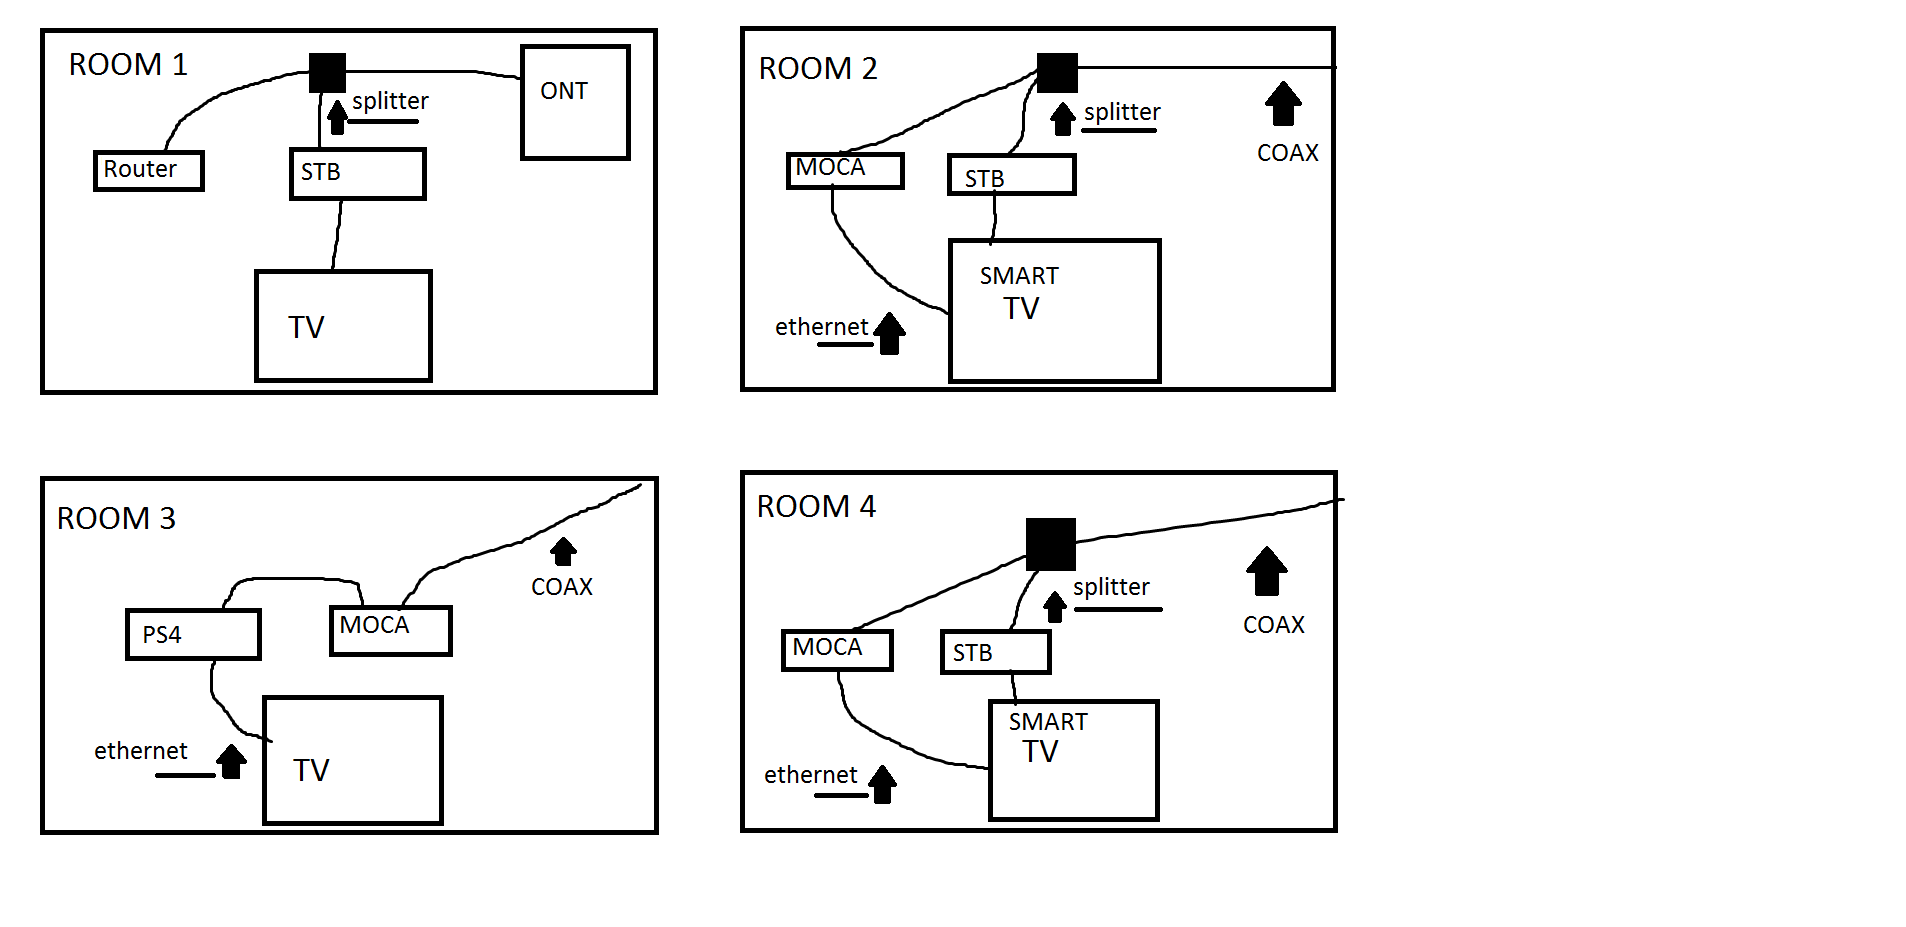 13199iF0E5A6593784289D?v=1.0 verizon fios moca setup verizon fios community smart house wiring diagrams at gsmx.co